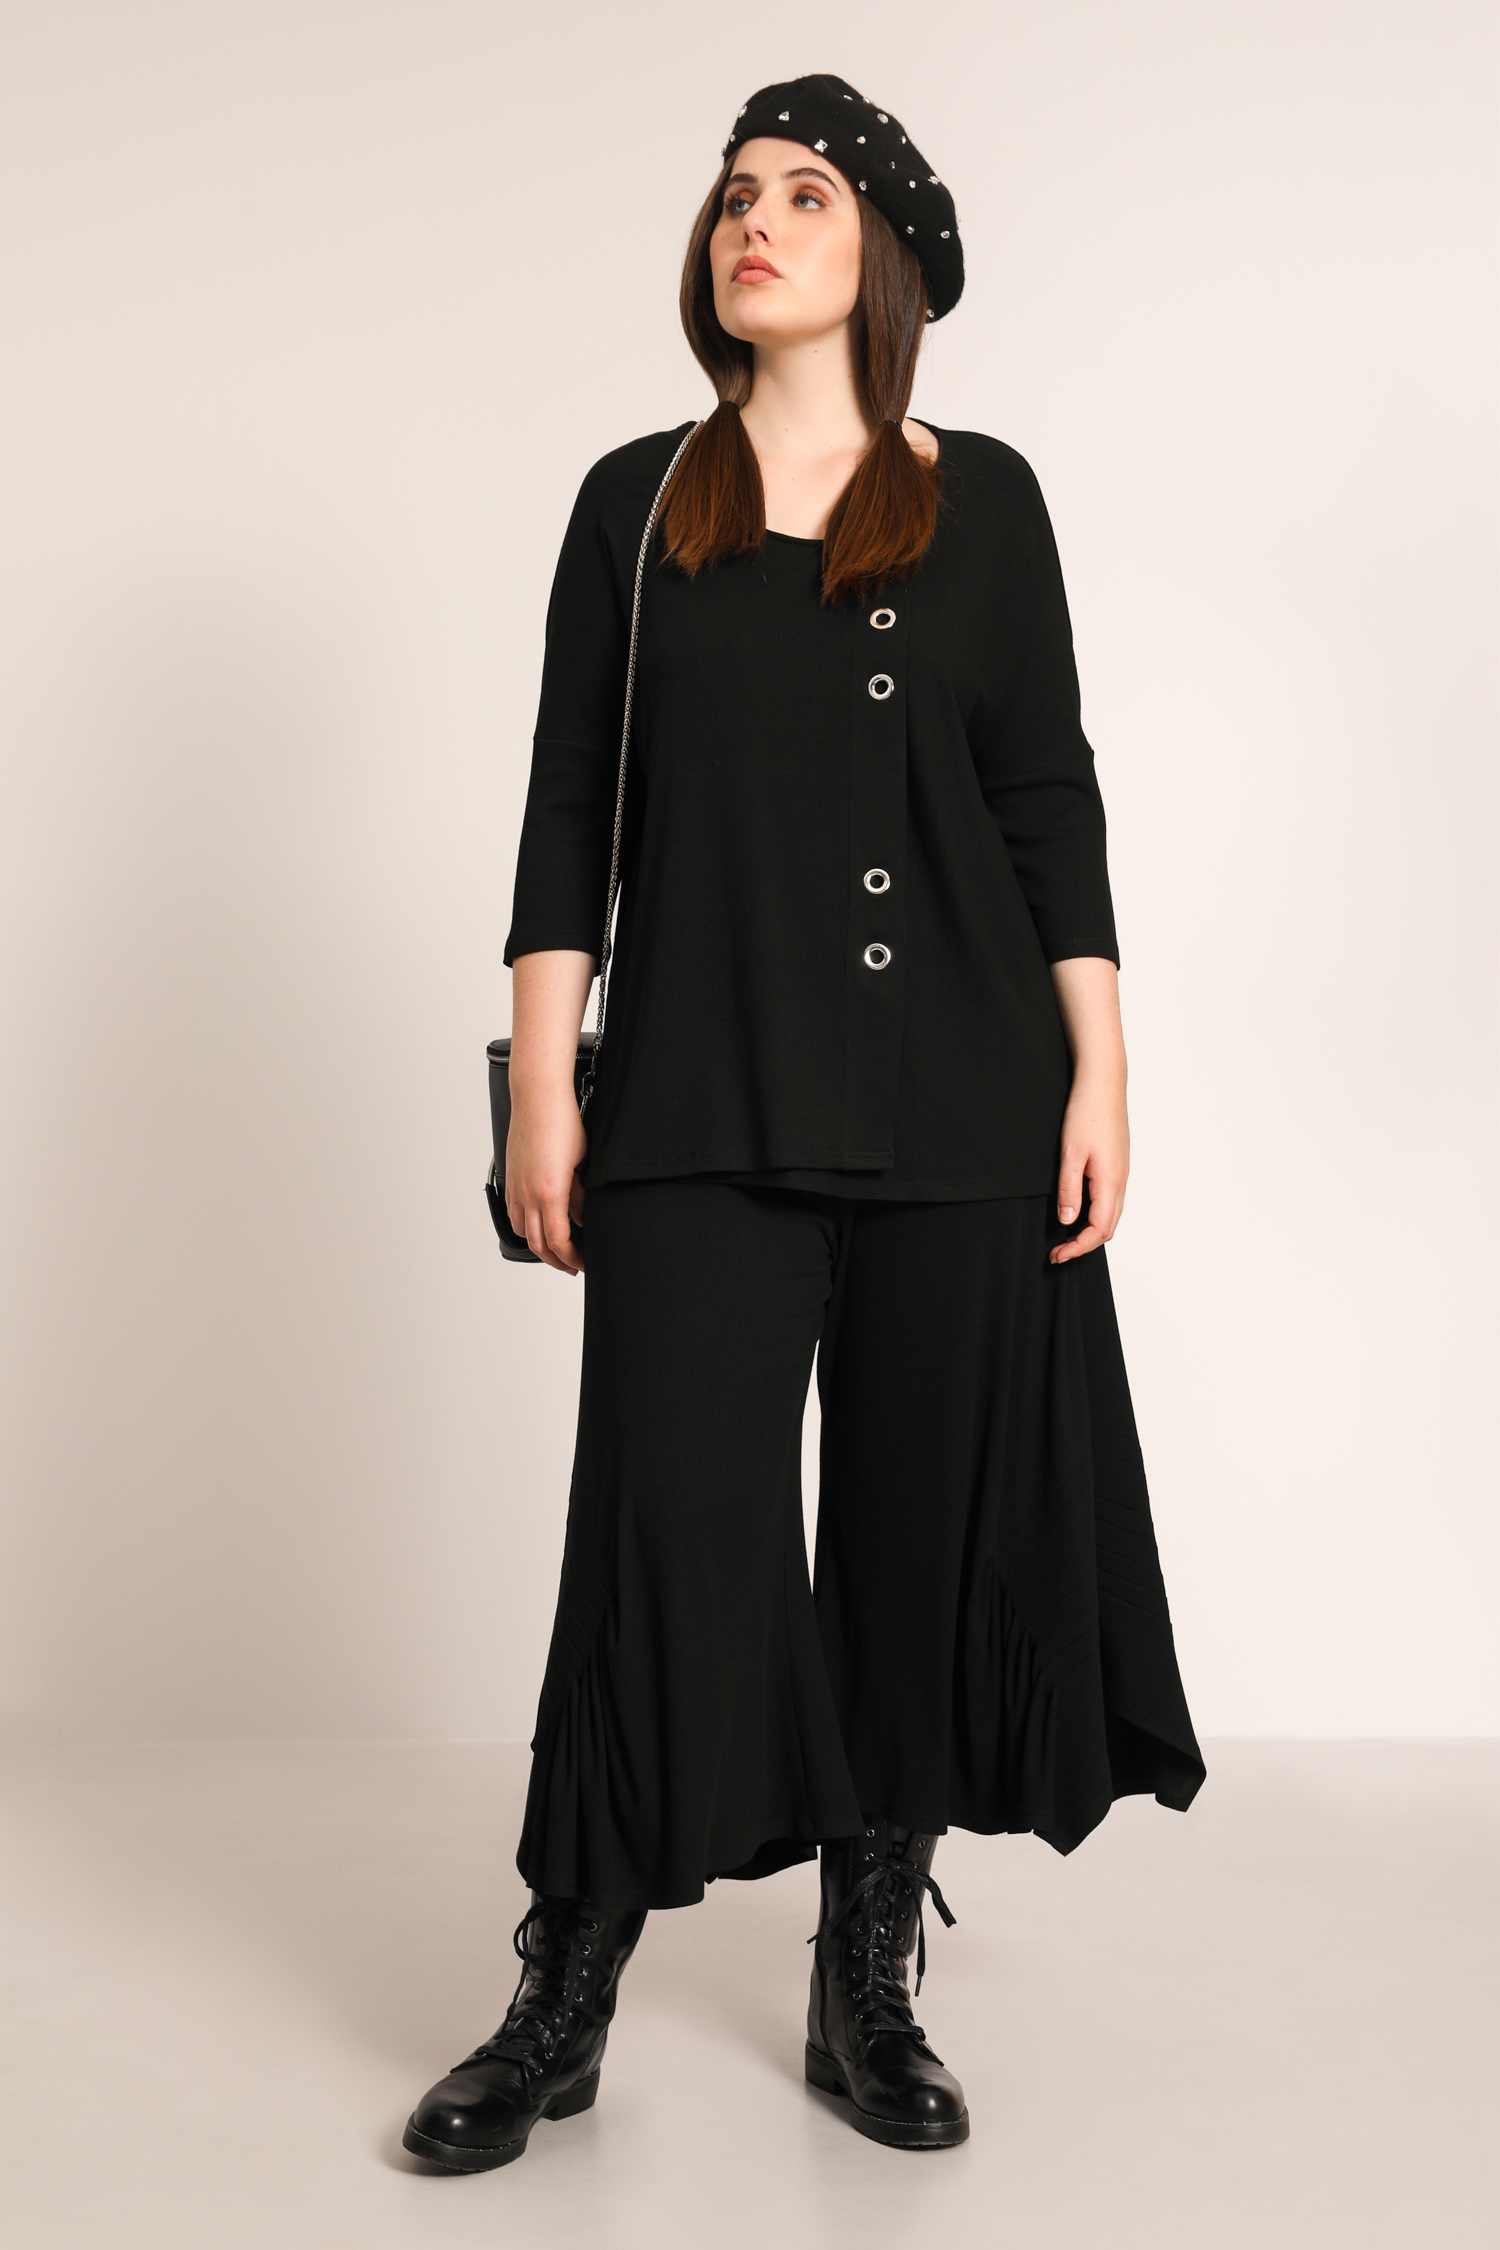 Rib sweater with eyelets (Delivery 25 - 30/07)